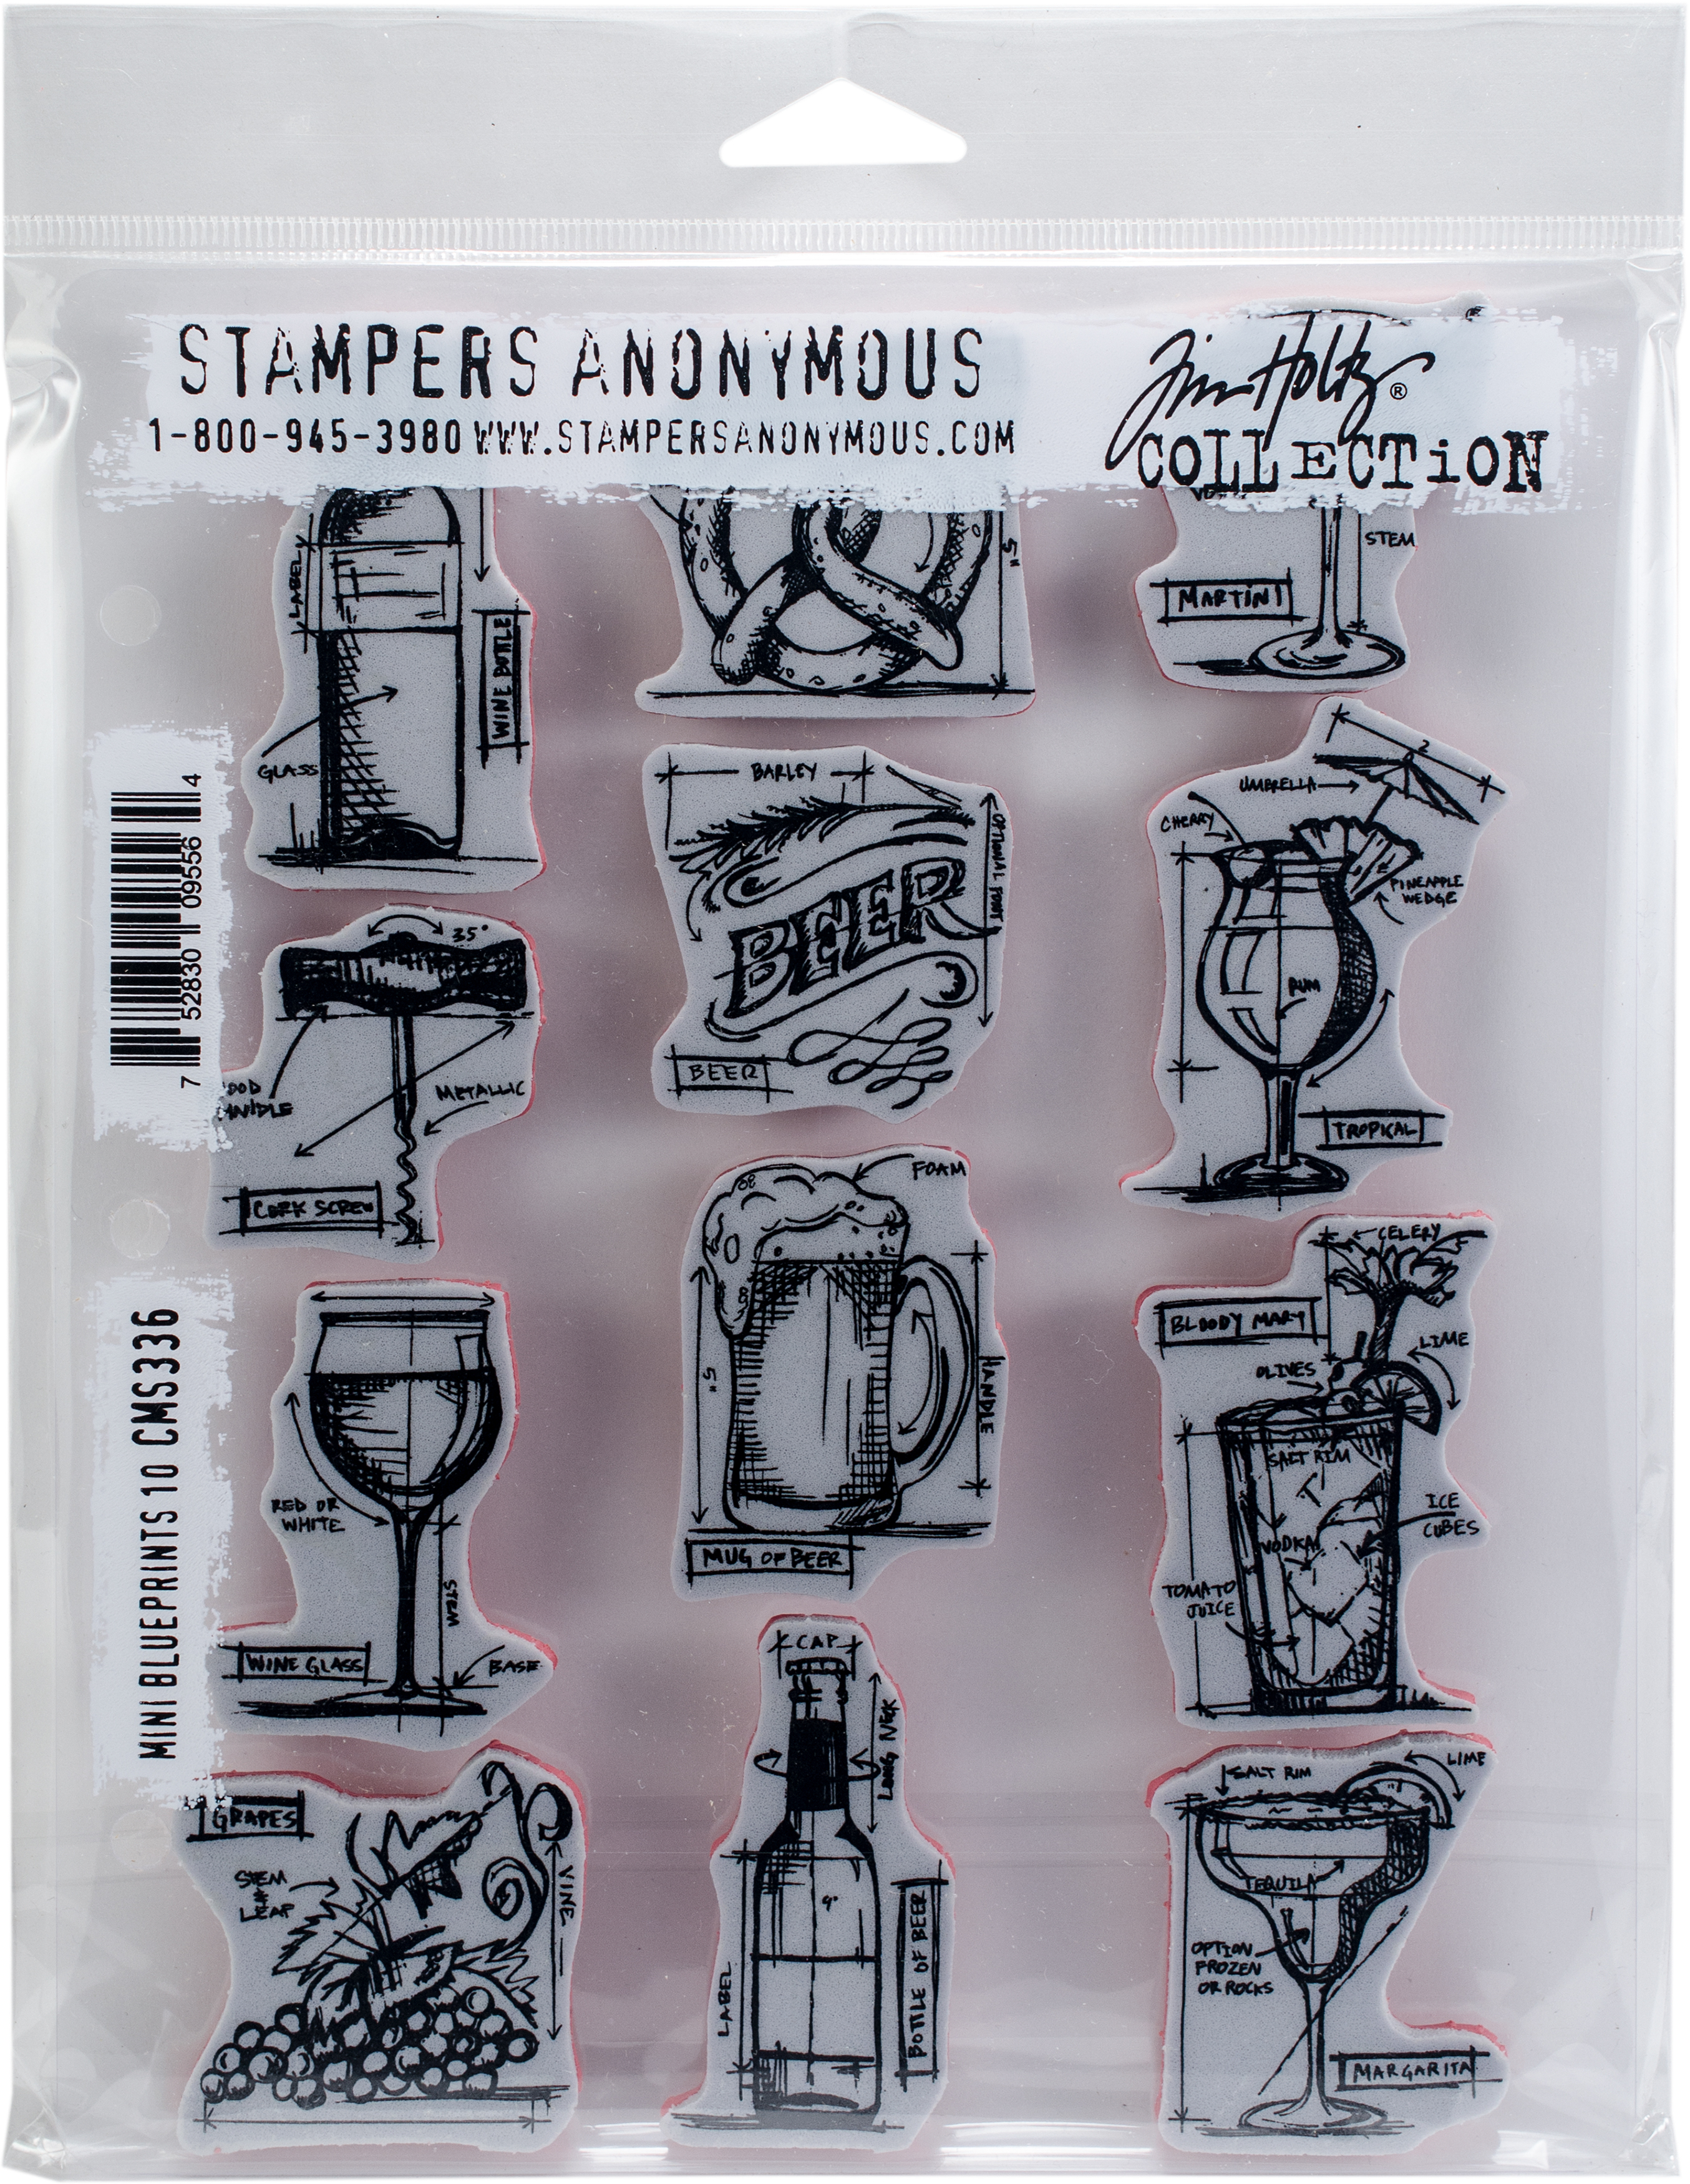 ^Tim Holtz Mini Blueprints 10